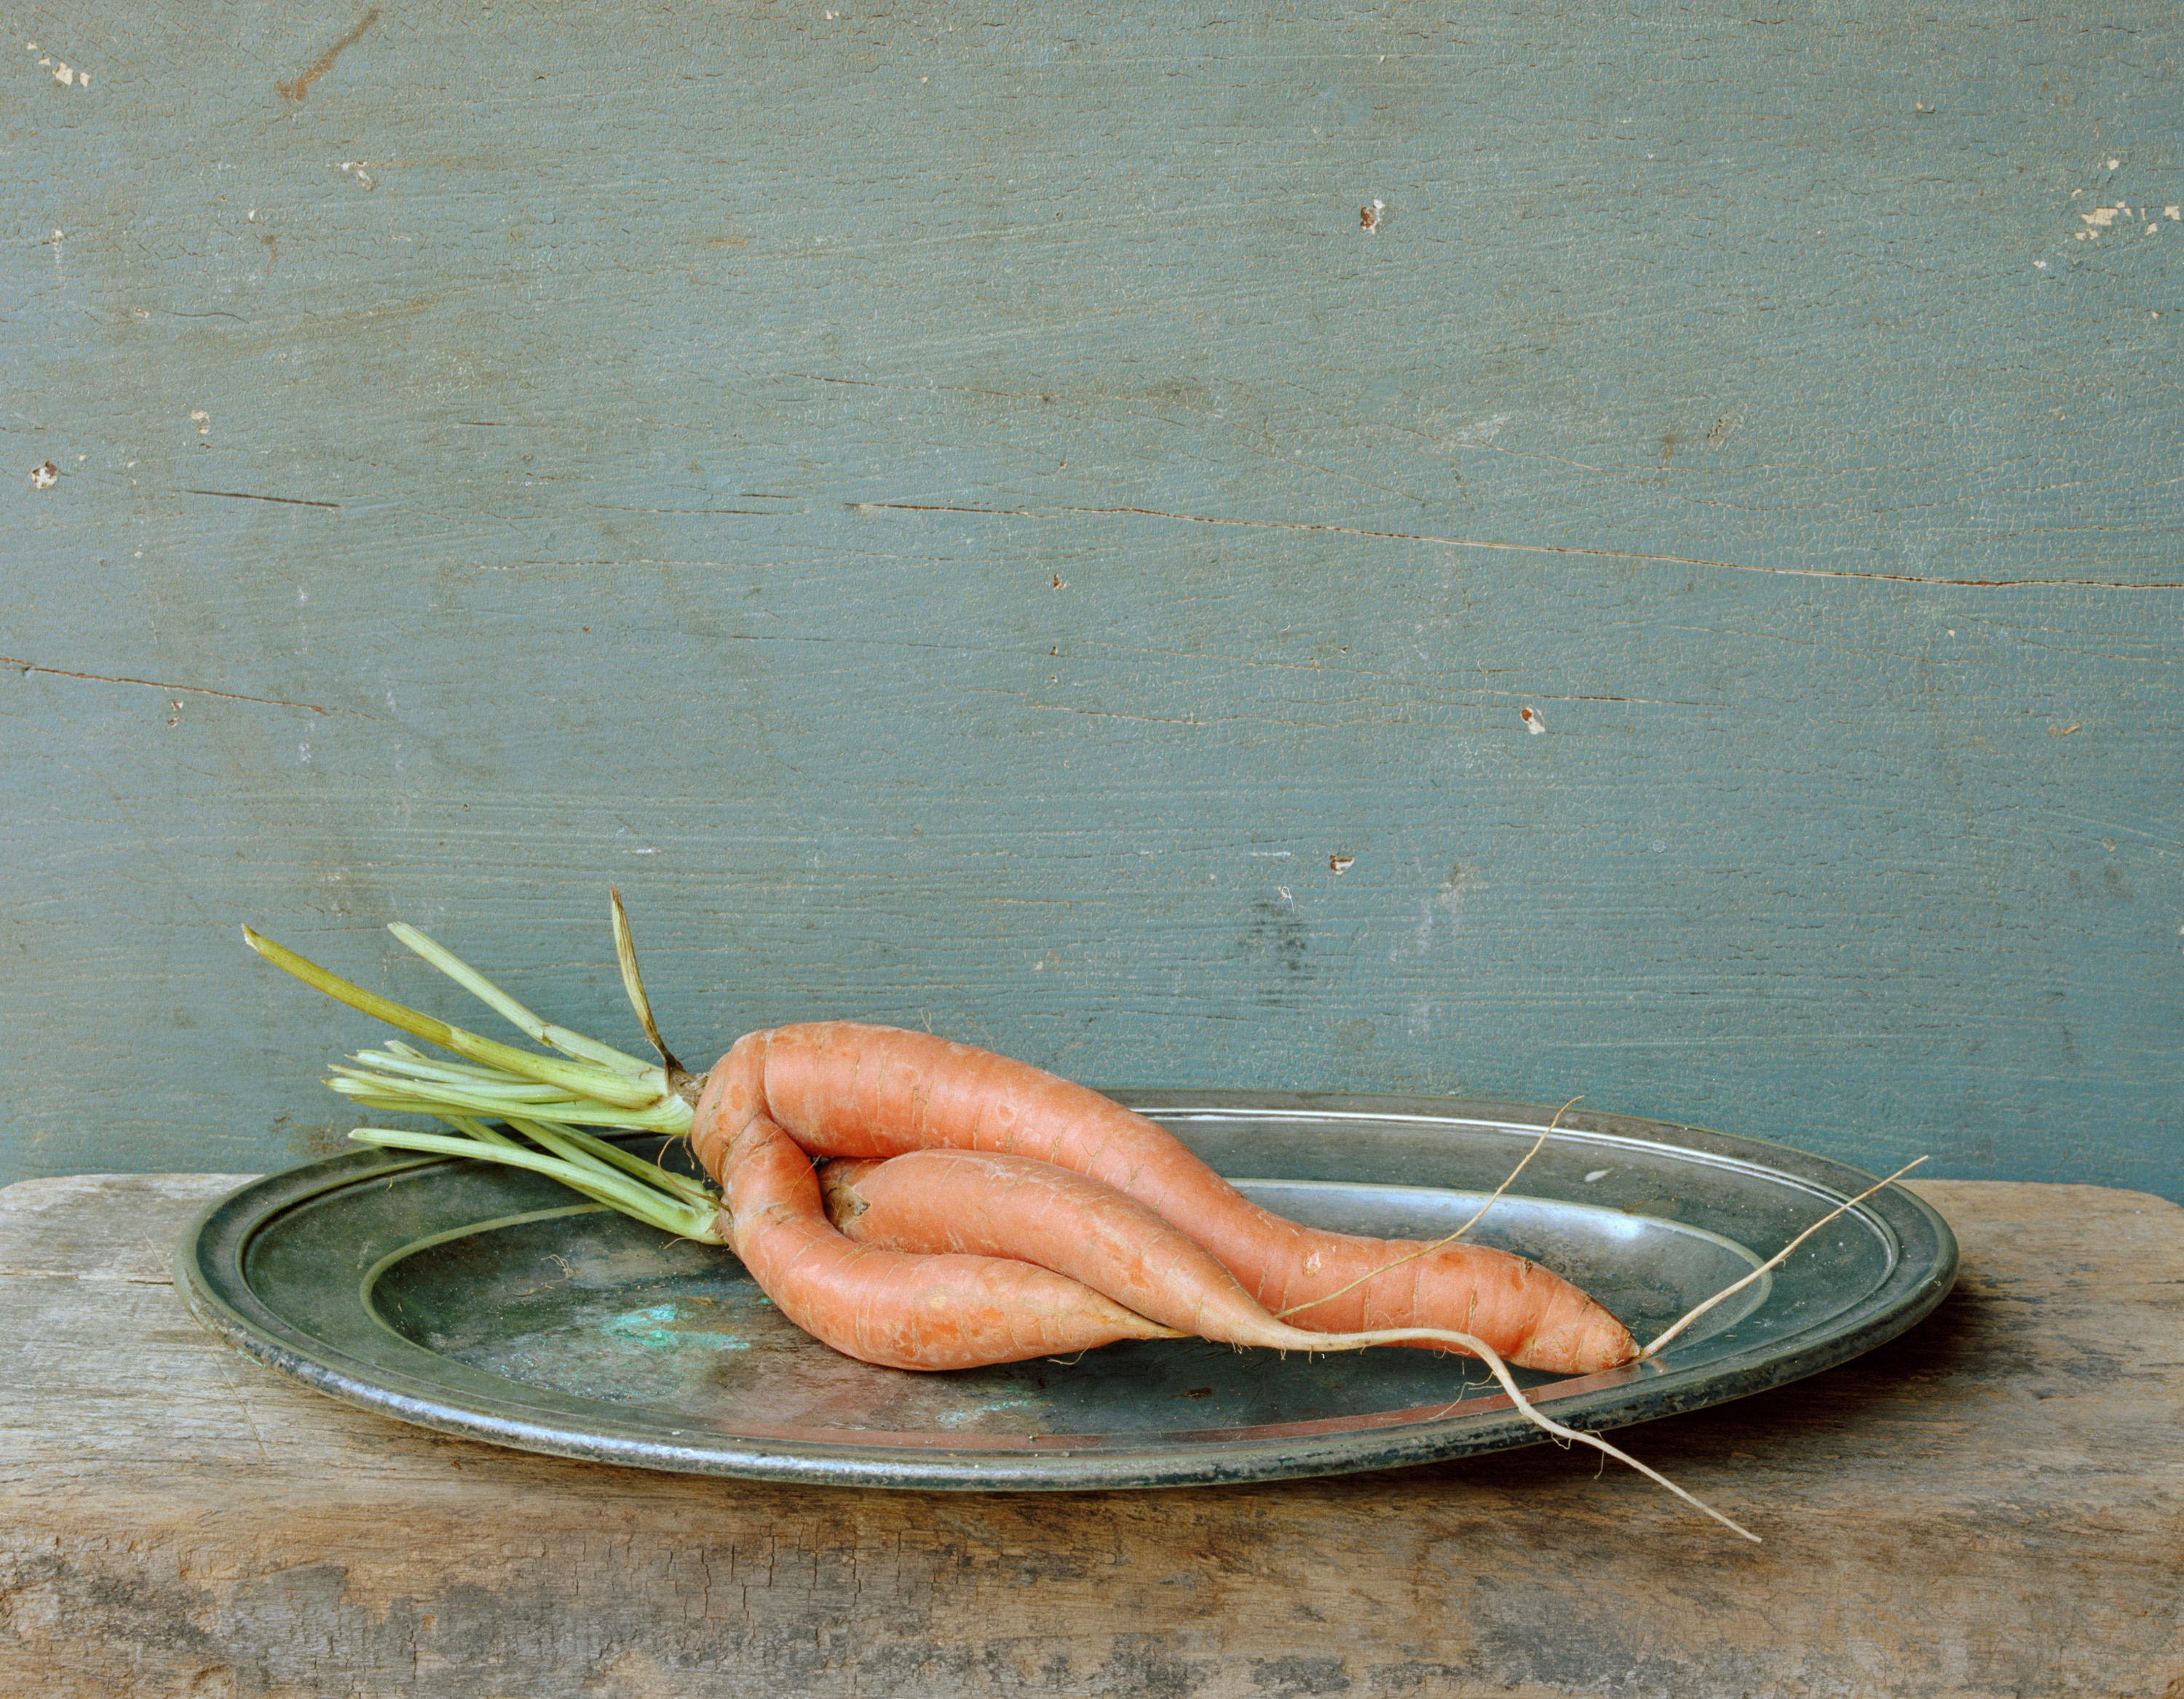 Carrots, entwined